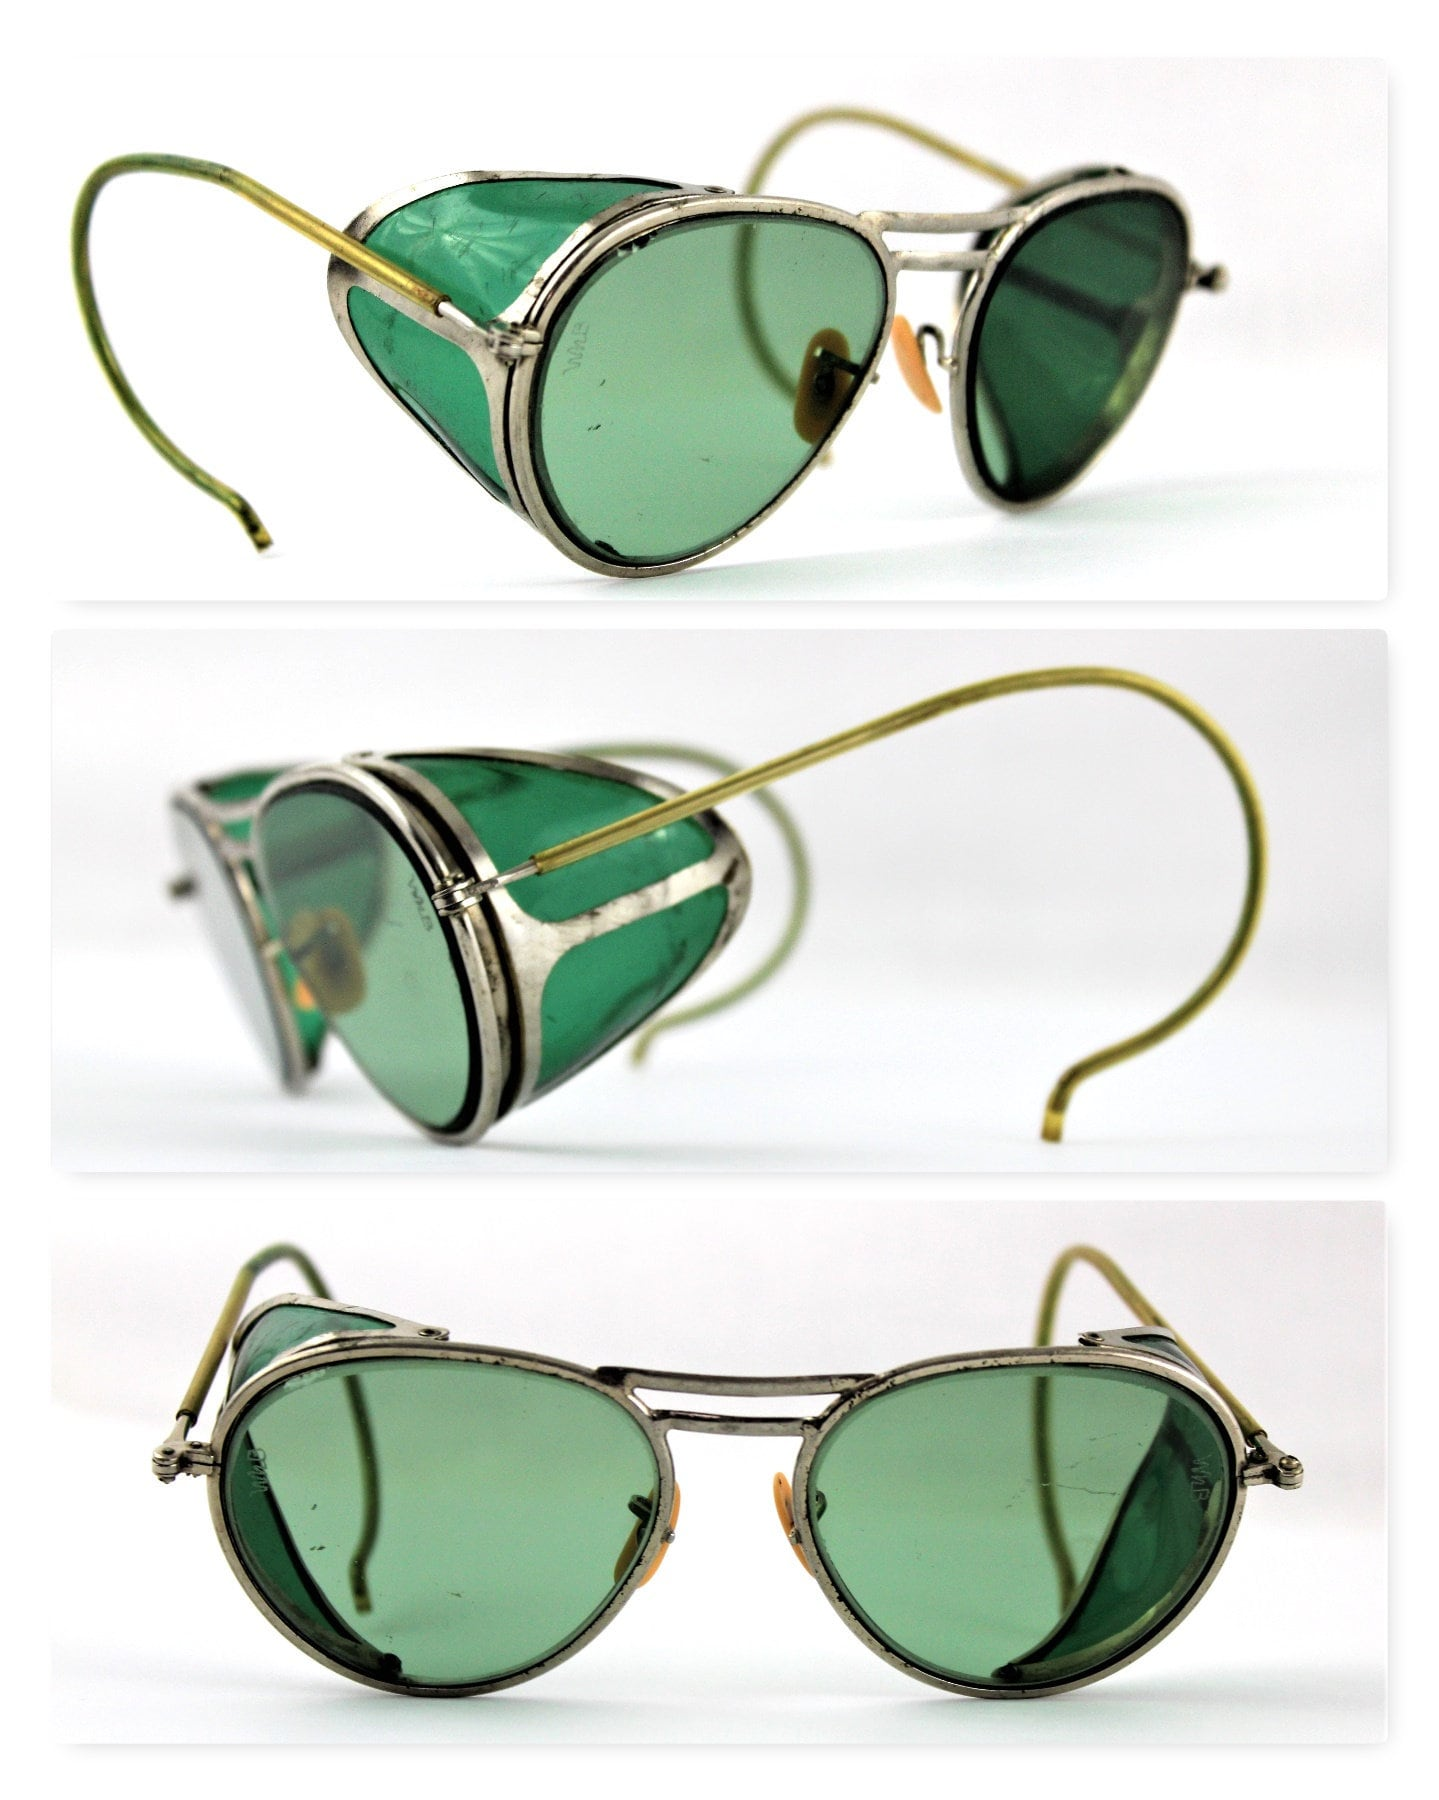 6f312939f40aa Vintage 1940s Willson Green Aviator glasses